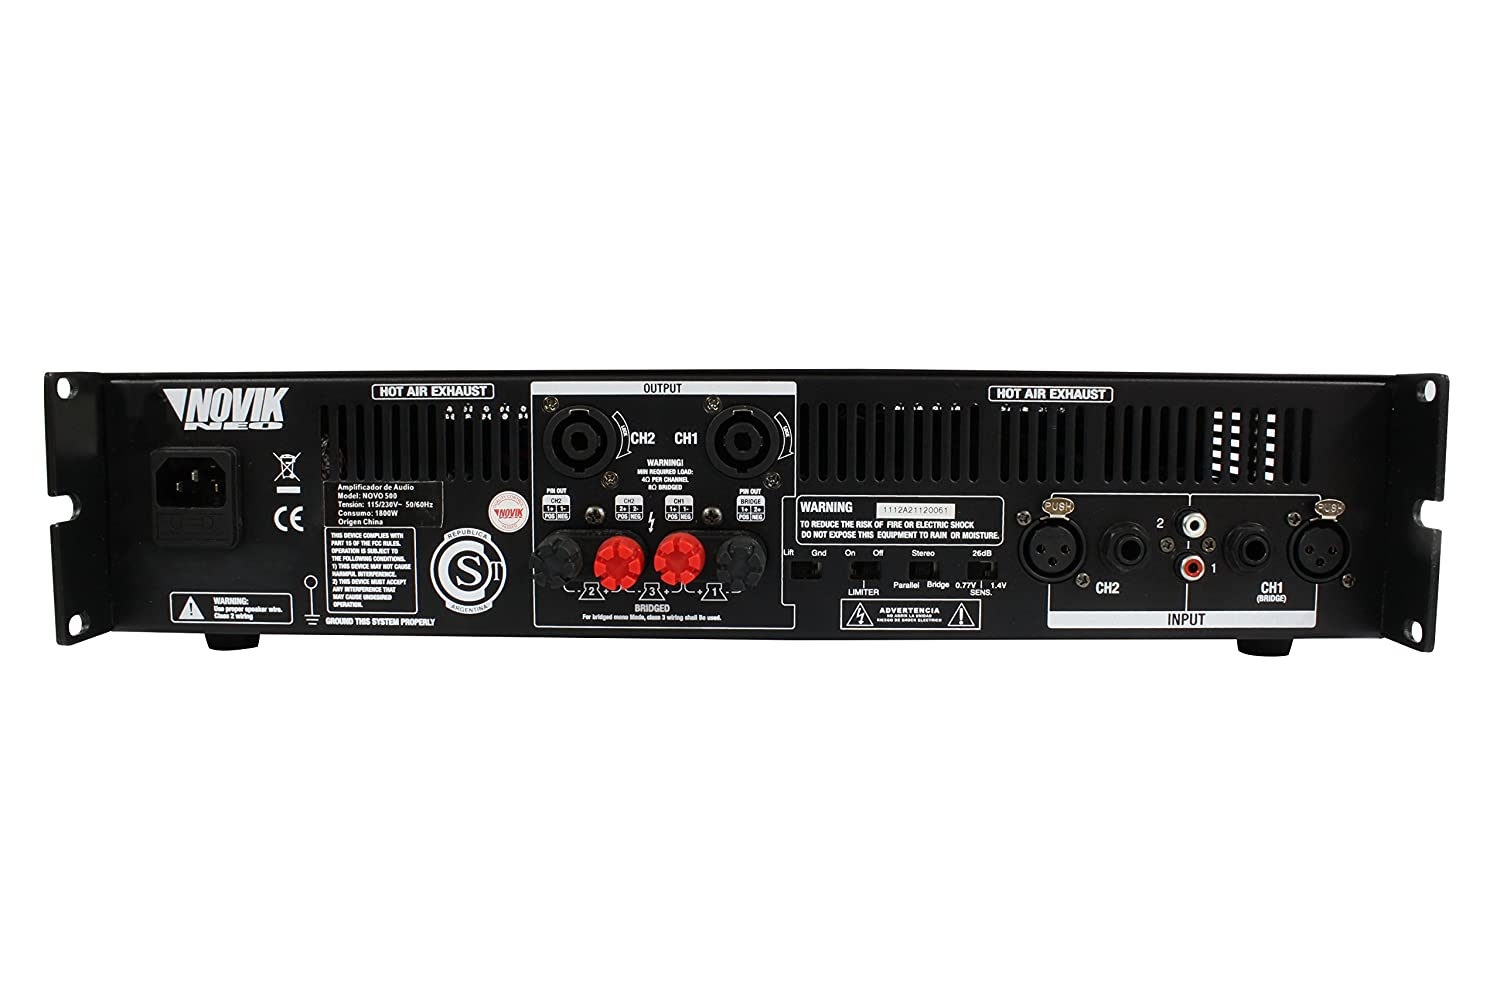 Amazon.com: NOVIK NEO NOVO 900 Power Amplifier 900-Watt RMS Screen channel temperature protect, clip and signal presence LED turbo cooling grilles: Musical ...